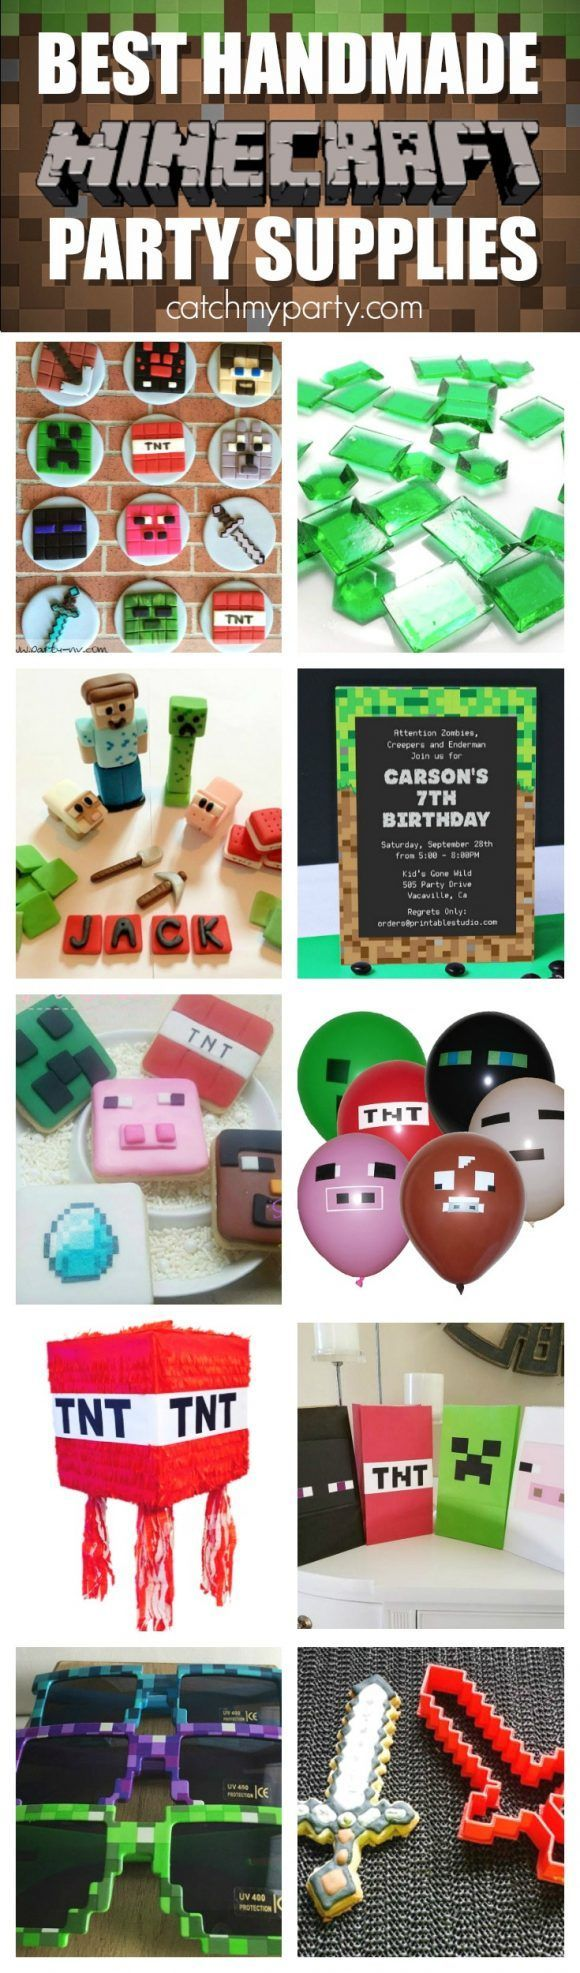 Best Handmade Minecraft Party Supplies | http://CatchMyparty.com